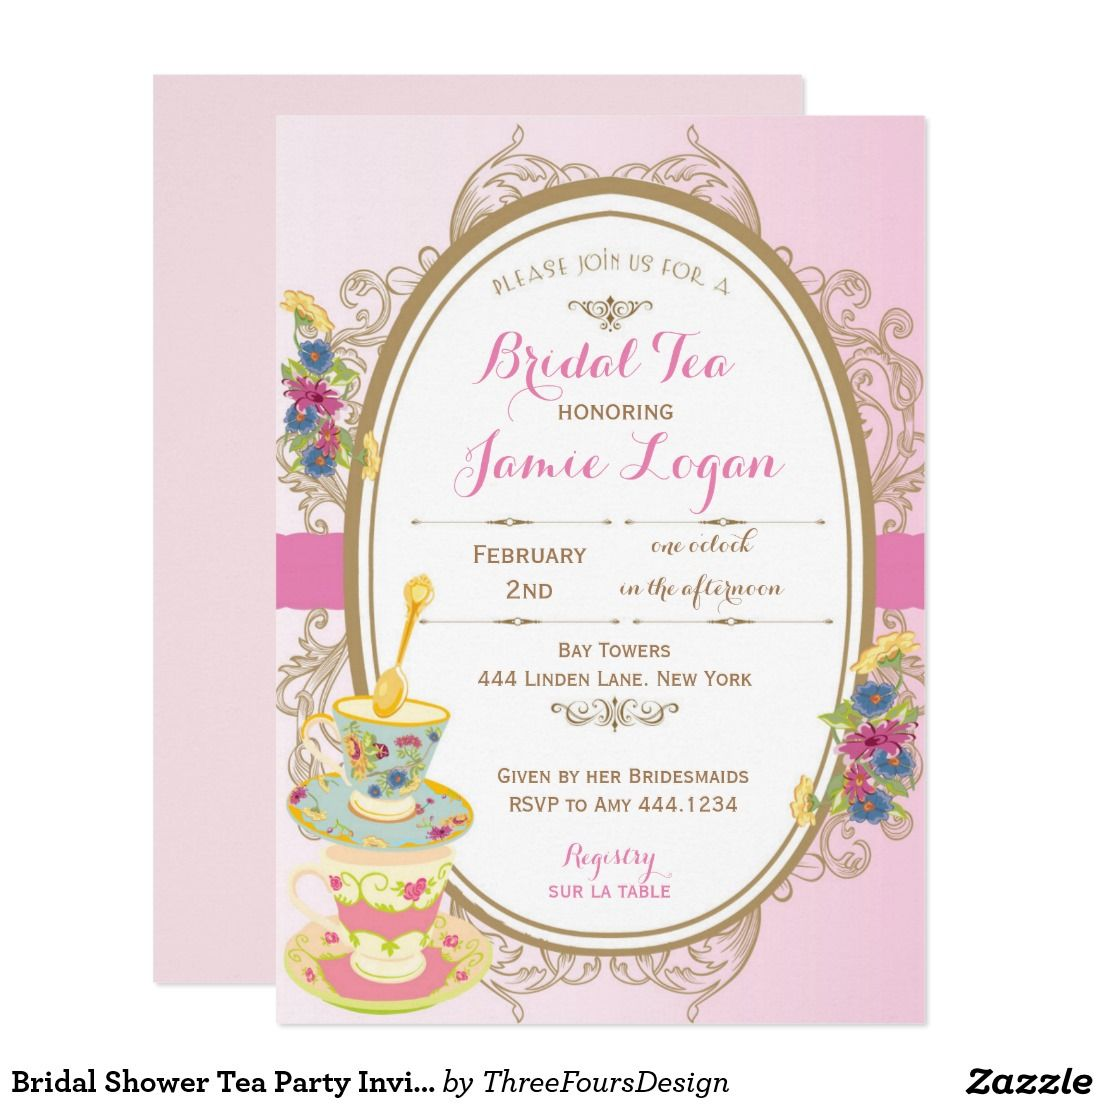 Bridal Shower Tea Party Invitation  Tea Party Invitiation